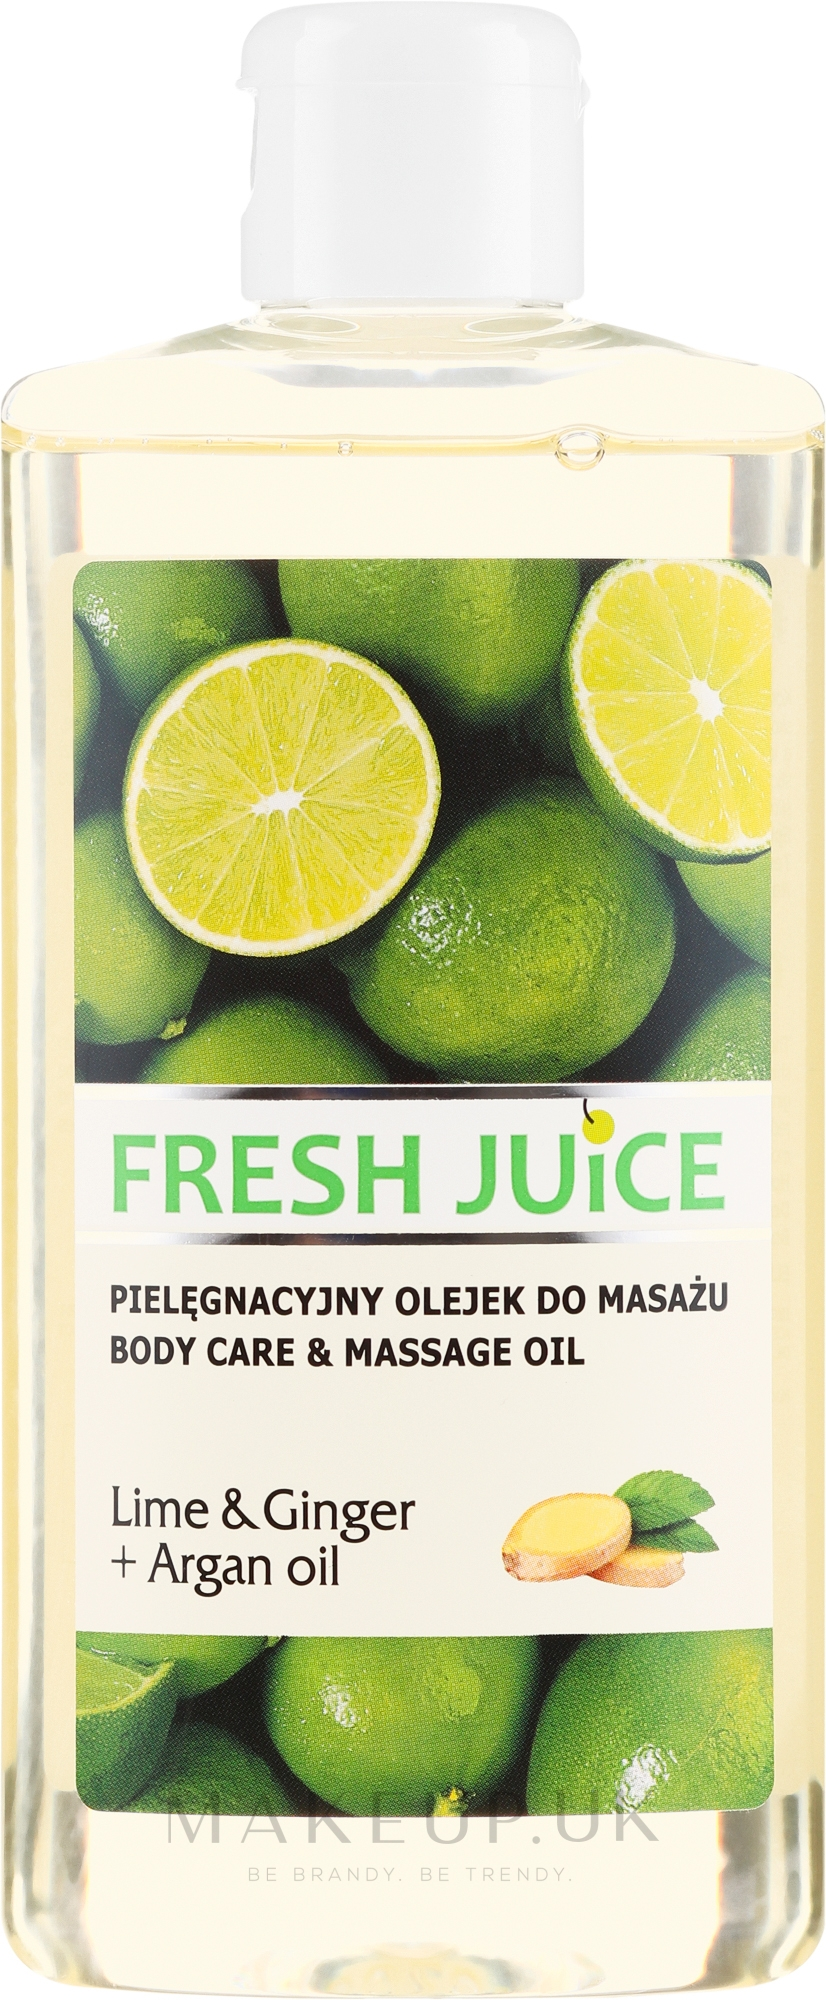 "Massage & Care Oil ""Lime & Ginger + Argan Oil"" - Fresh Juice Energy Lime&Ginger+Argan Oil — photo 150 ml"